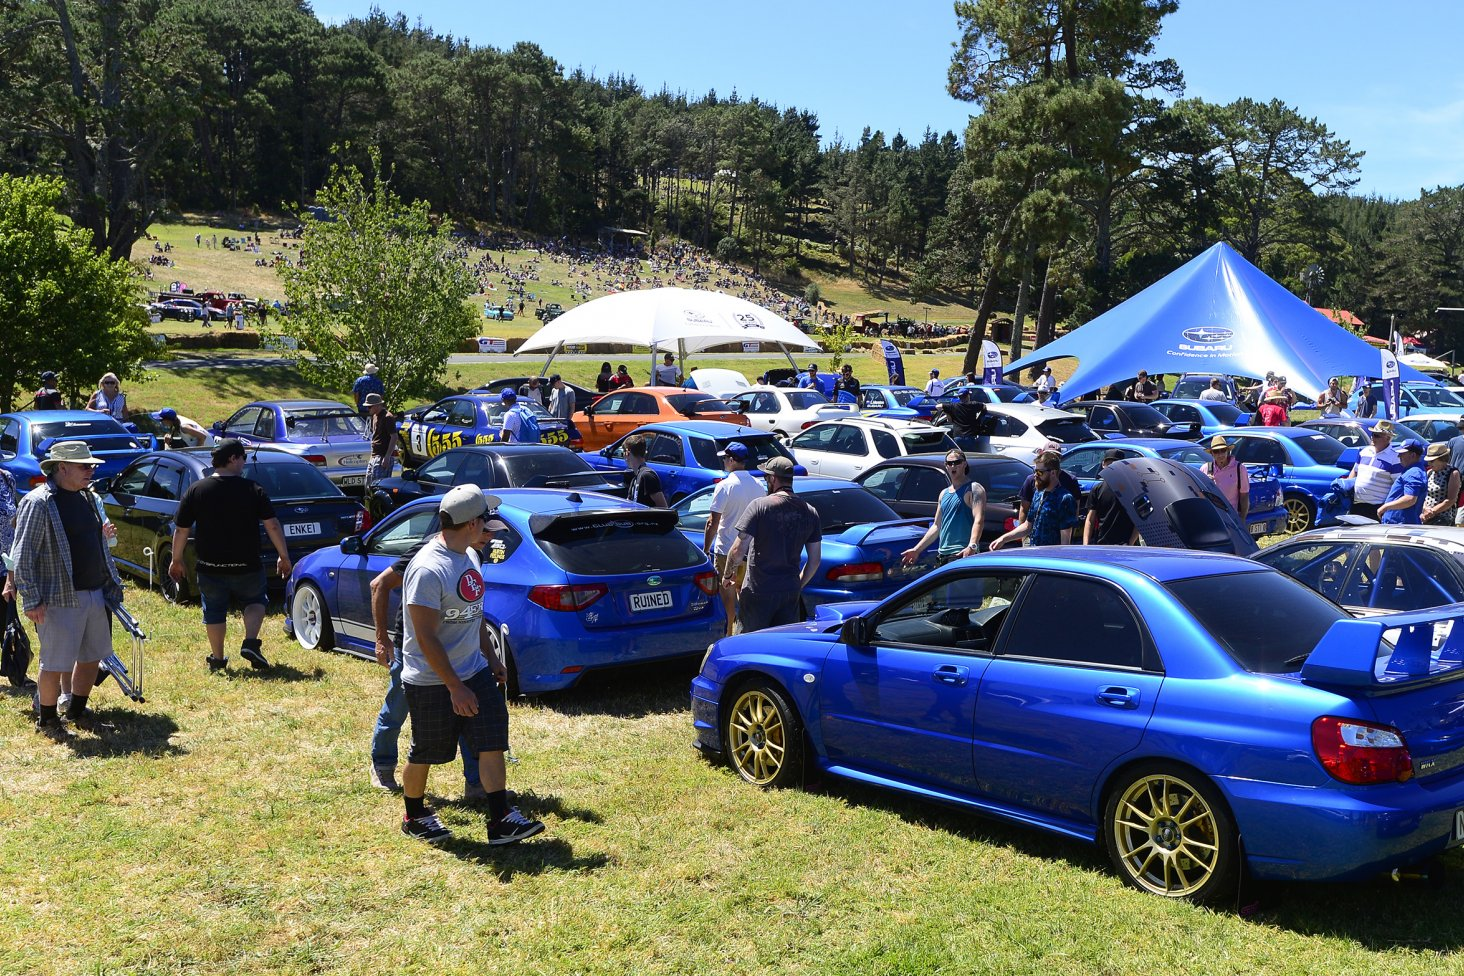 The 25 best WRX competition winners line-up in front of the Subaru tent at the Leadfoot Festival. PHOTO: GEOFF RIDDER